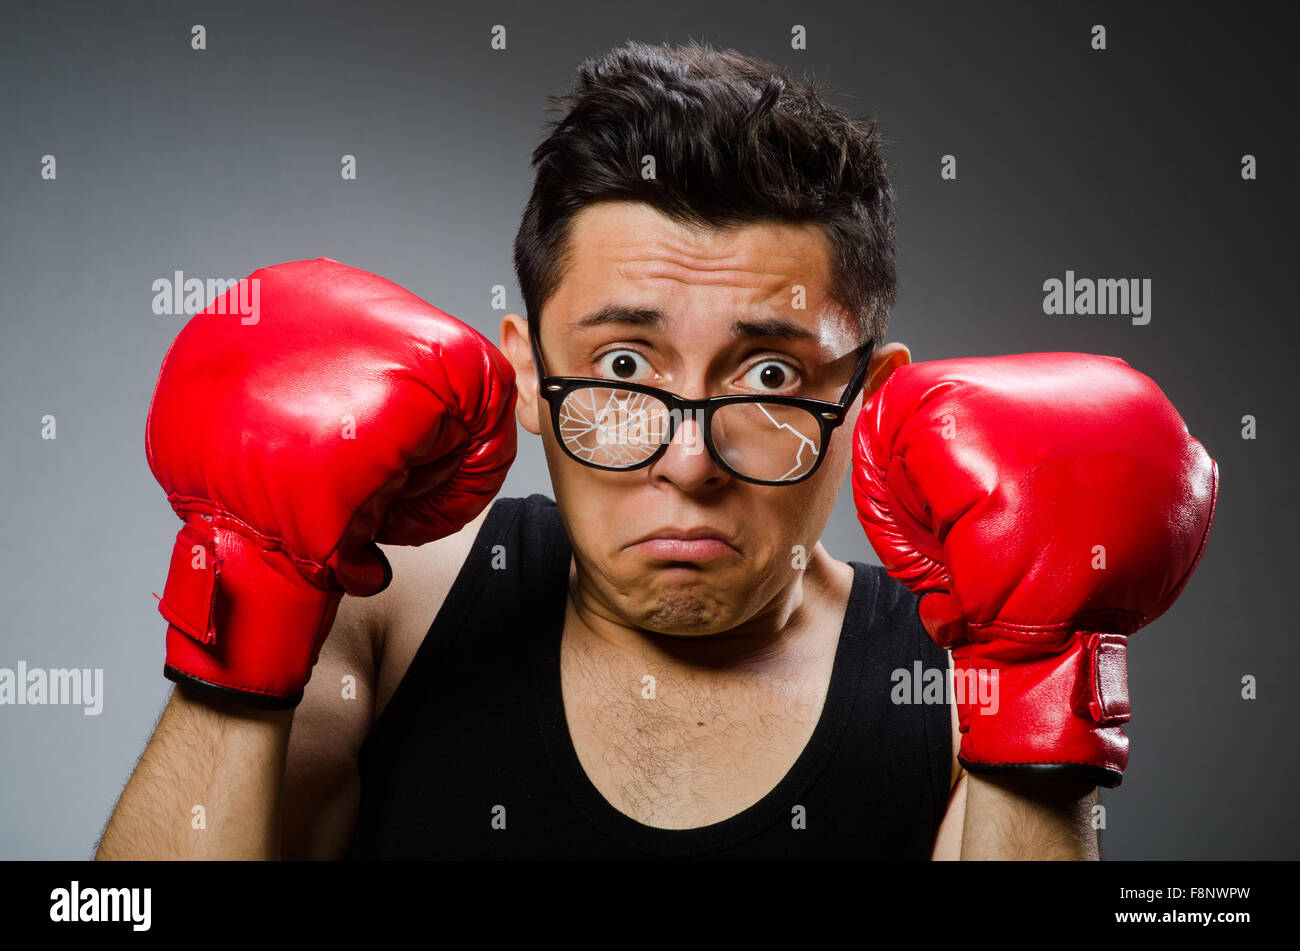 Boxing Glove And Face And Punch Stock Photos & Boxing Glove And Face